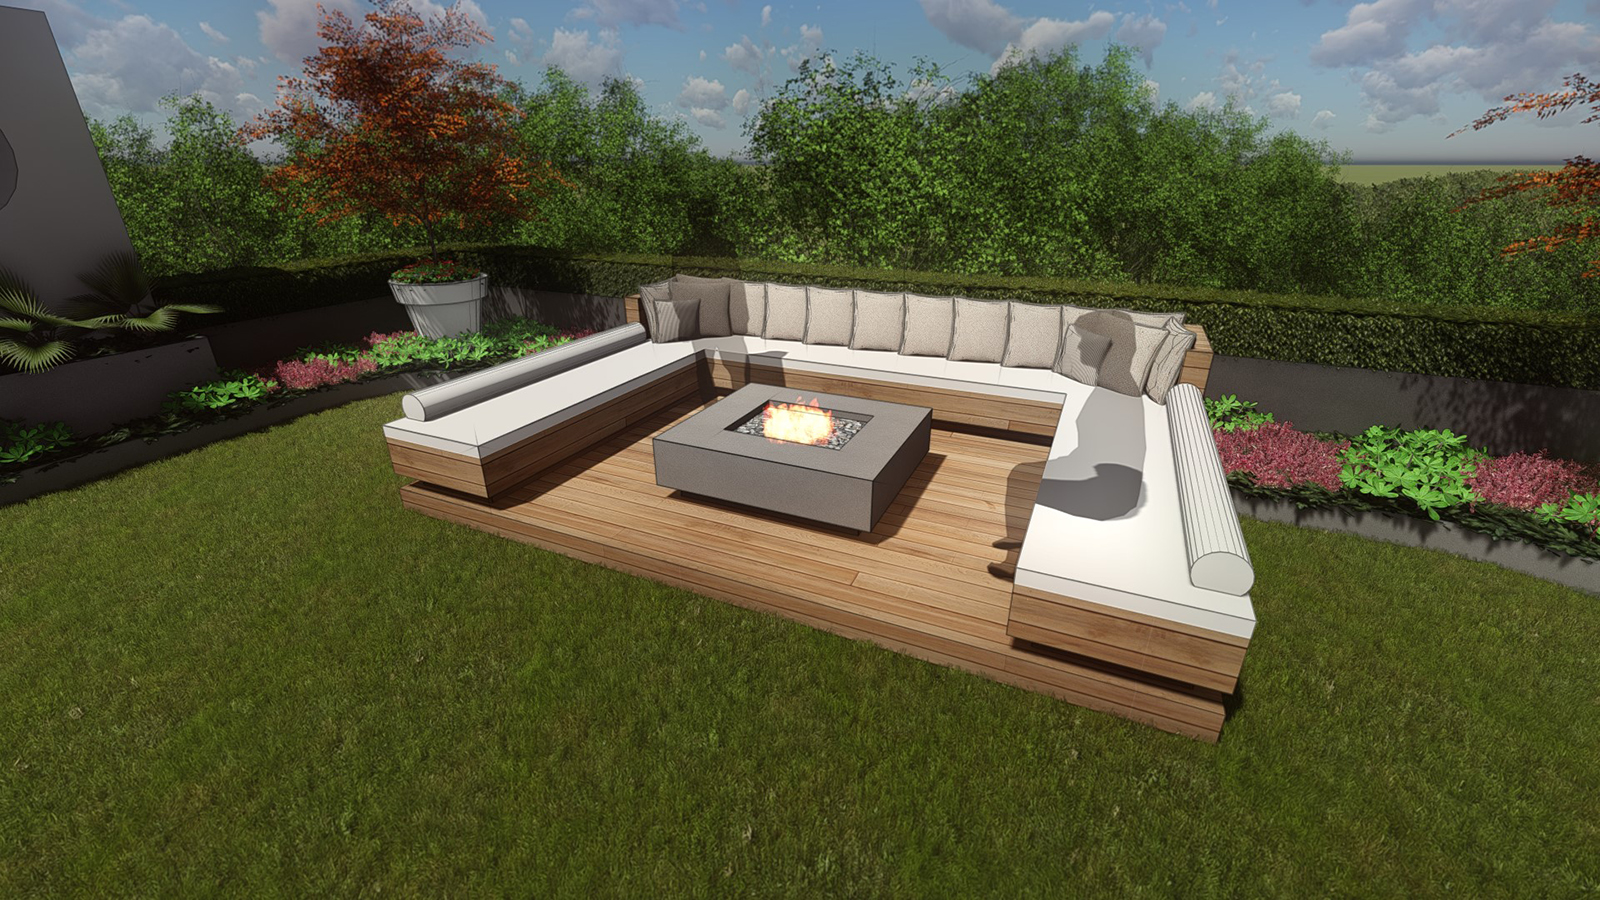 RAISED FIRE PIT SEATING AREA